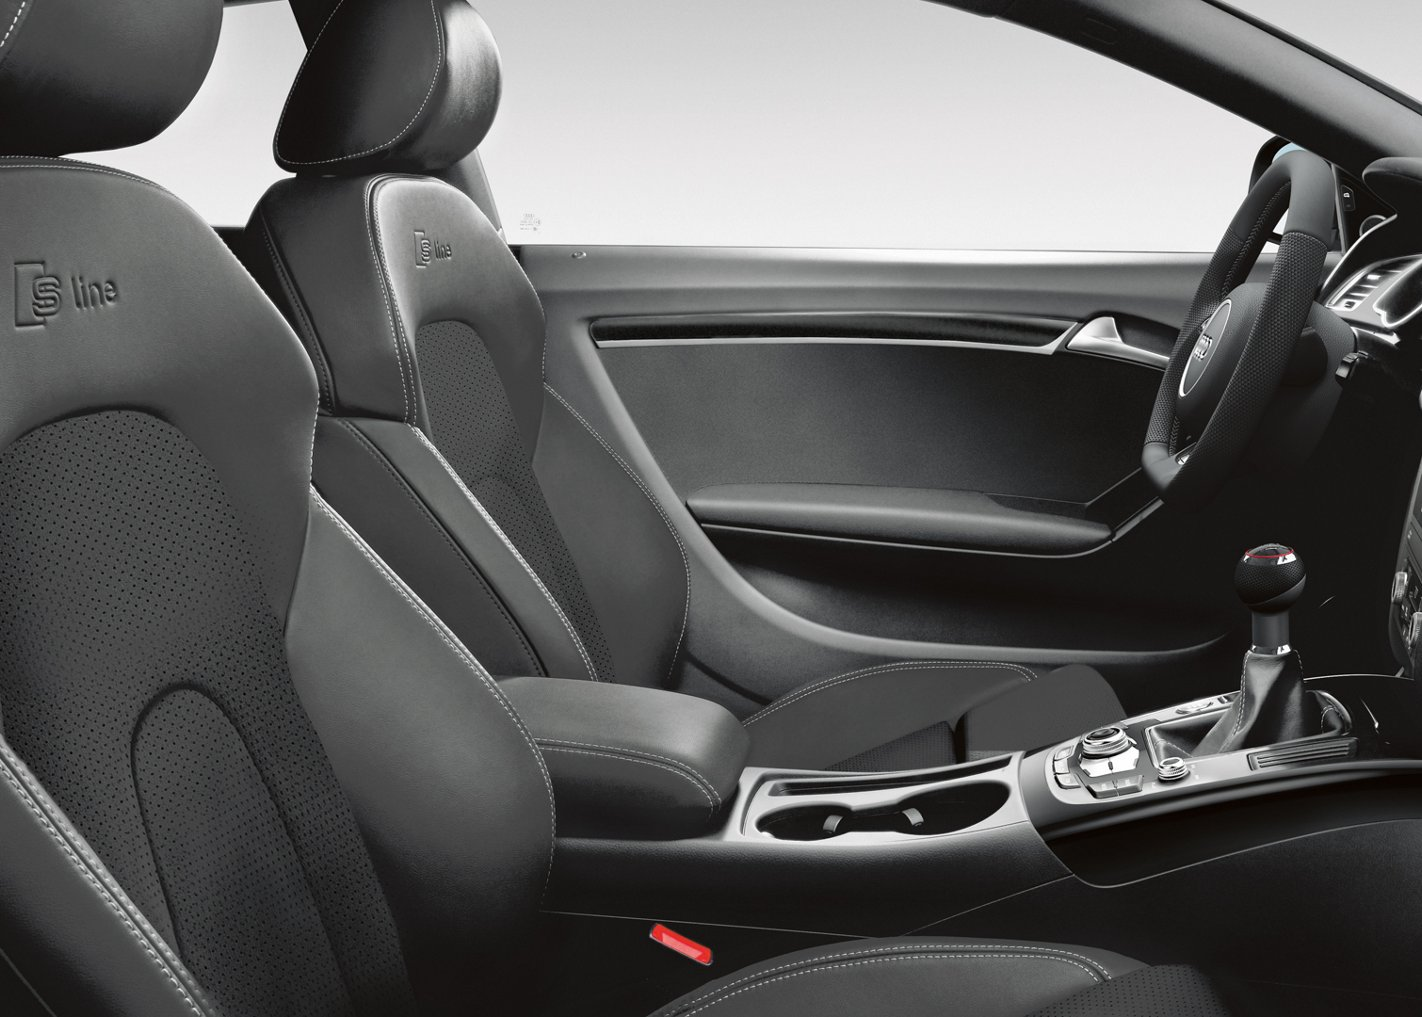 New Audi A5 Interior image 1